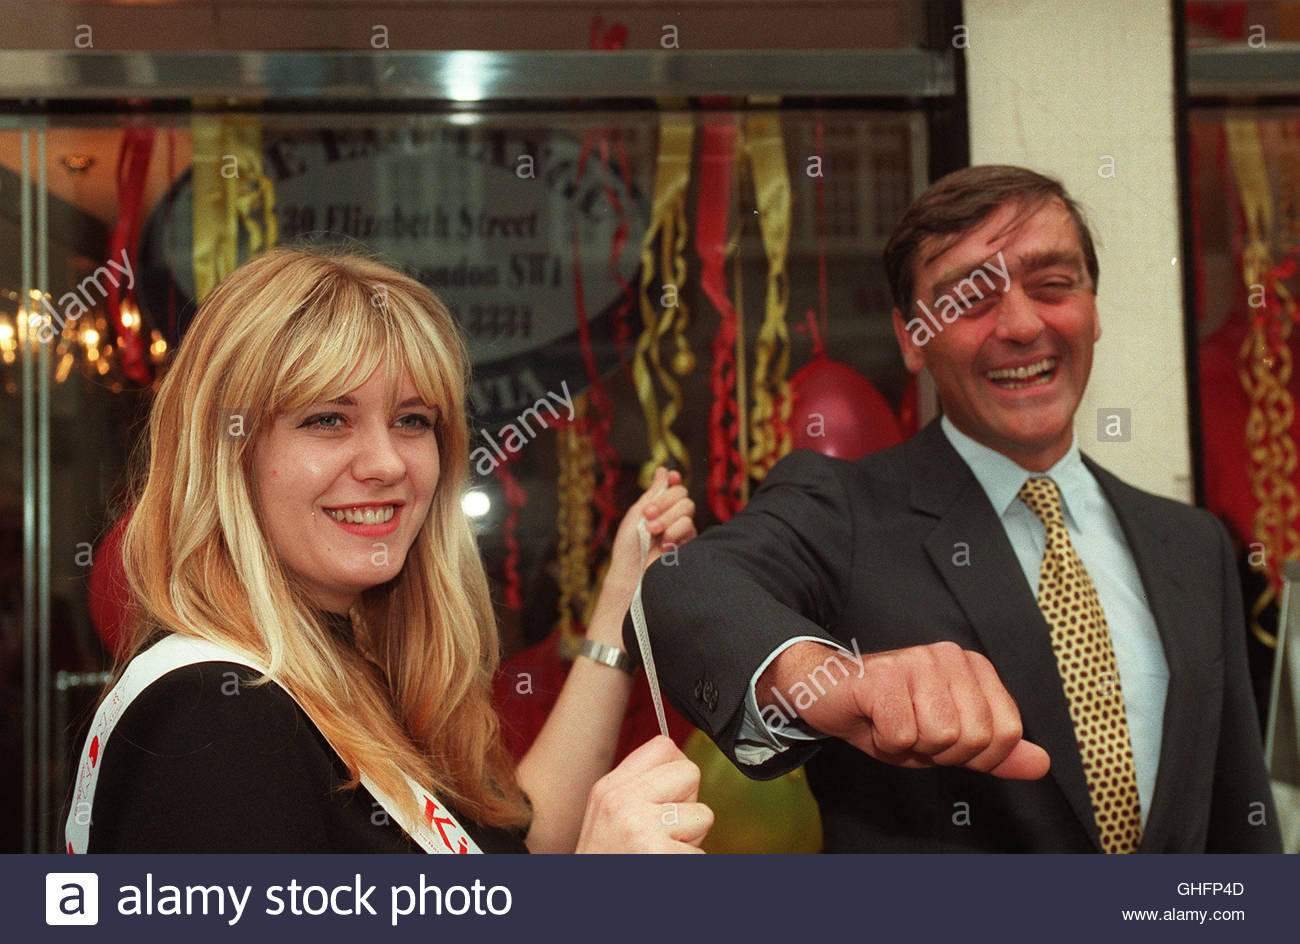 File photo dated 13/9/1995 of the Duke of Westminster being measured by Petra Roddis when he opened the National - Stock Image